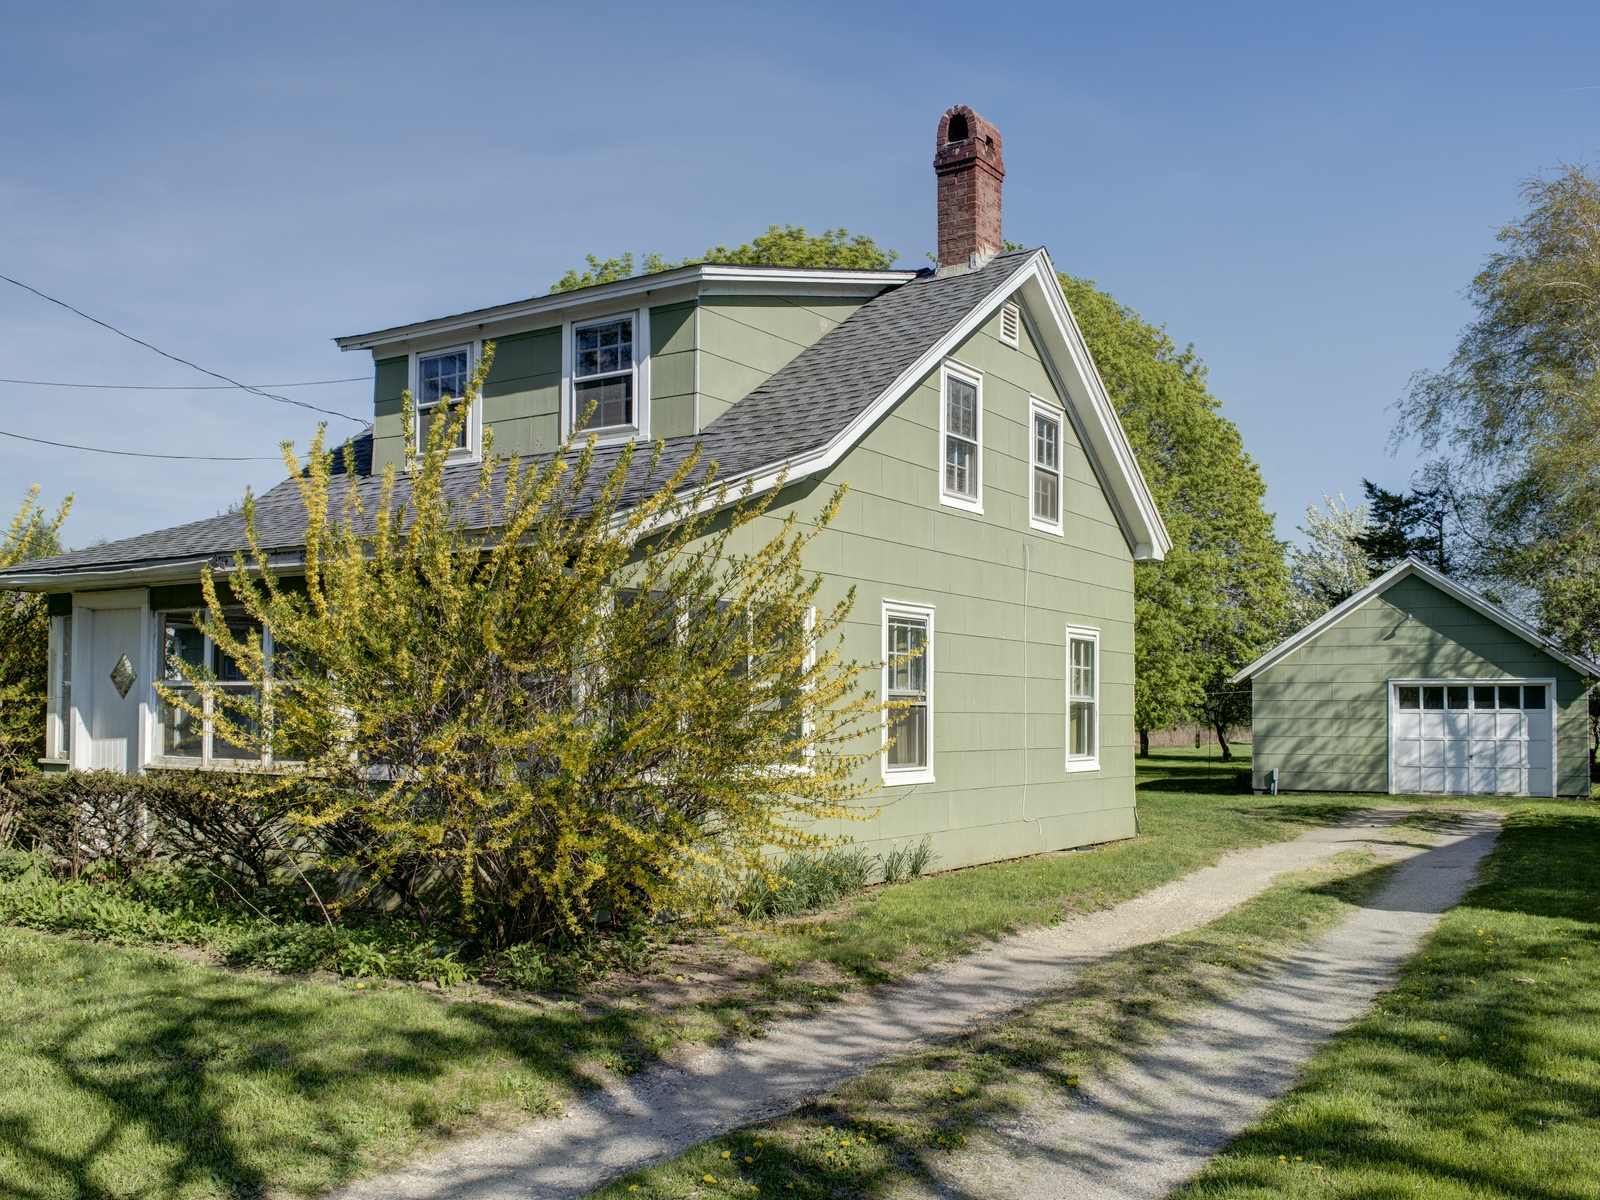 Single Family Home for Sale at Farmhouse 23650 Main Rd Orient, New York 11957 United States